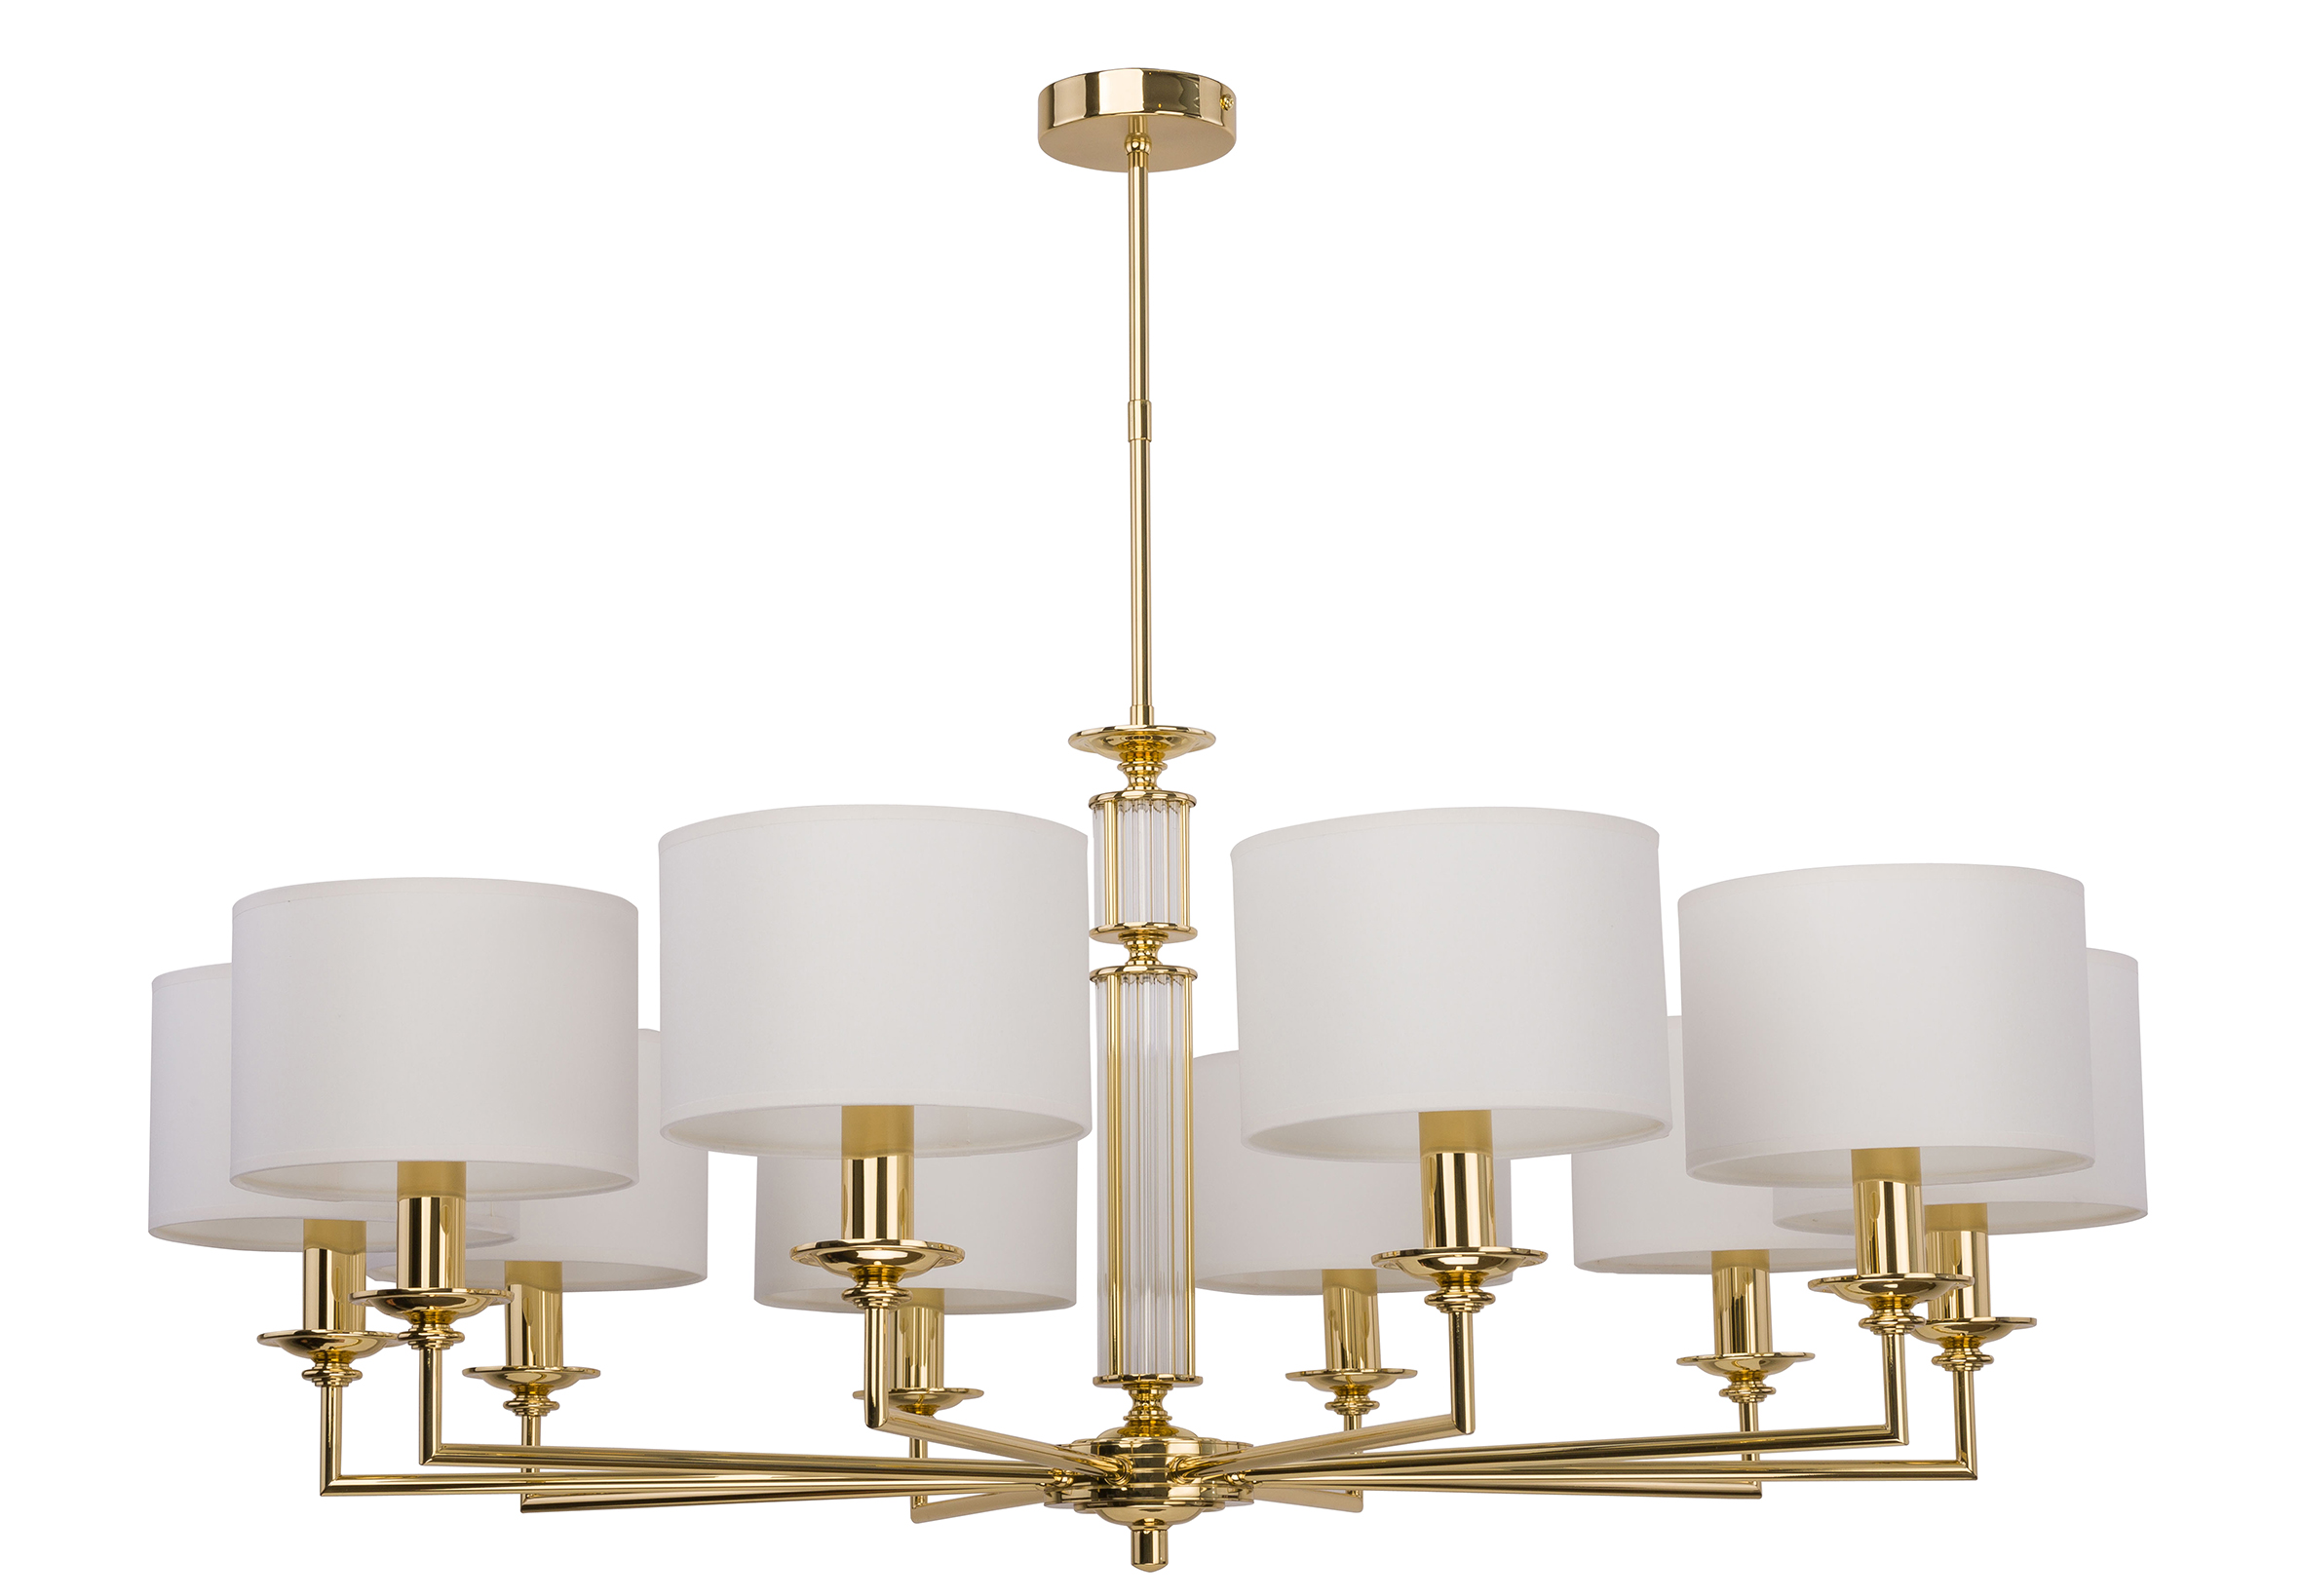 Gold Bedroom Chandelier Artu 10 Lights White Shades Luxury Chandelier